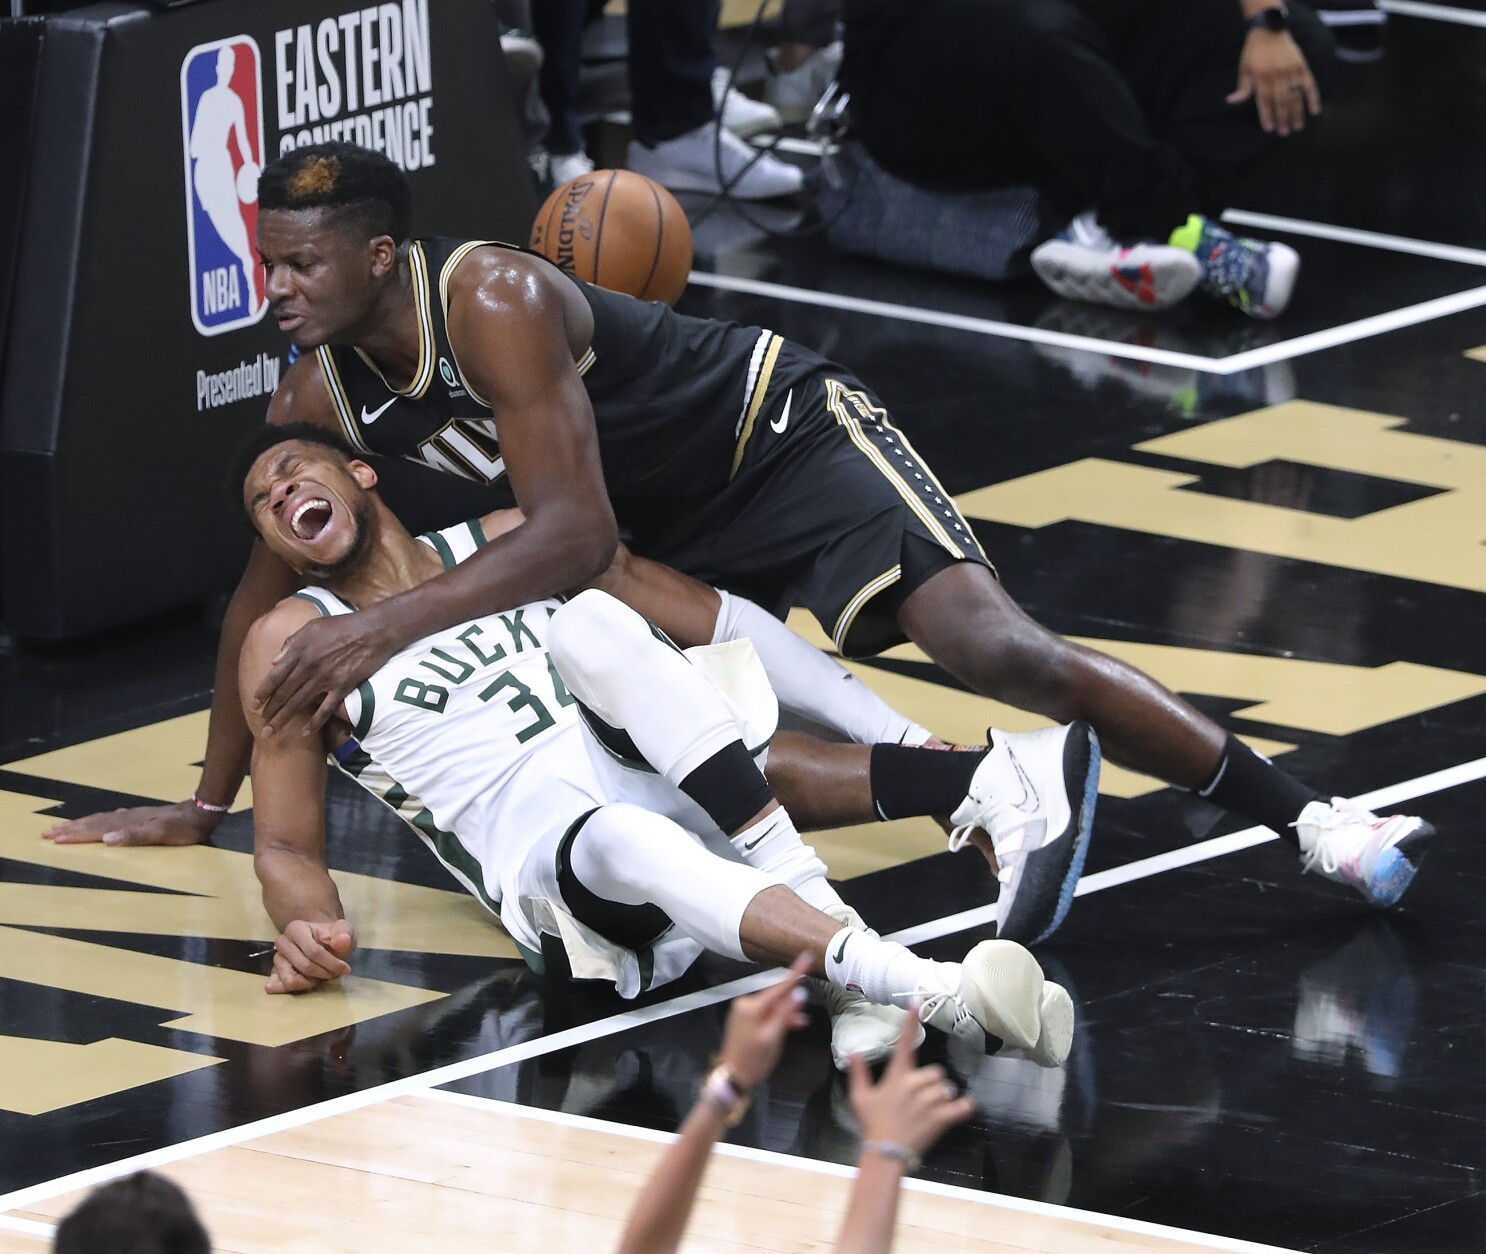 Bucks star Giannis Antetokounmpo injures knee in loss to Hawks - Los  Angeles Times